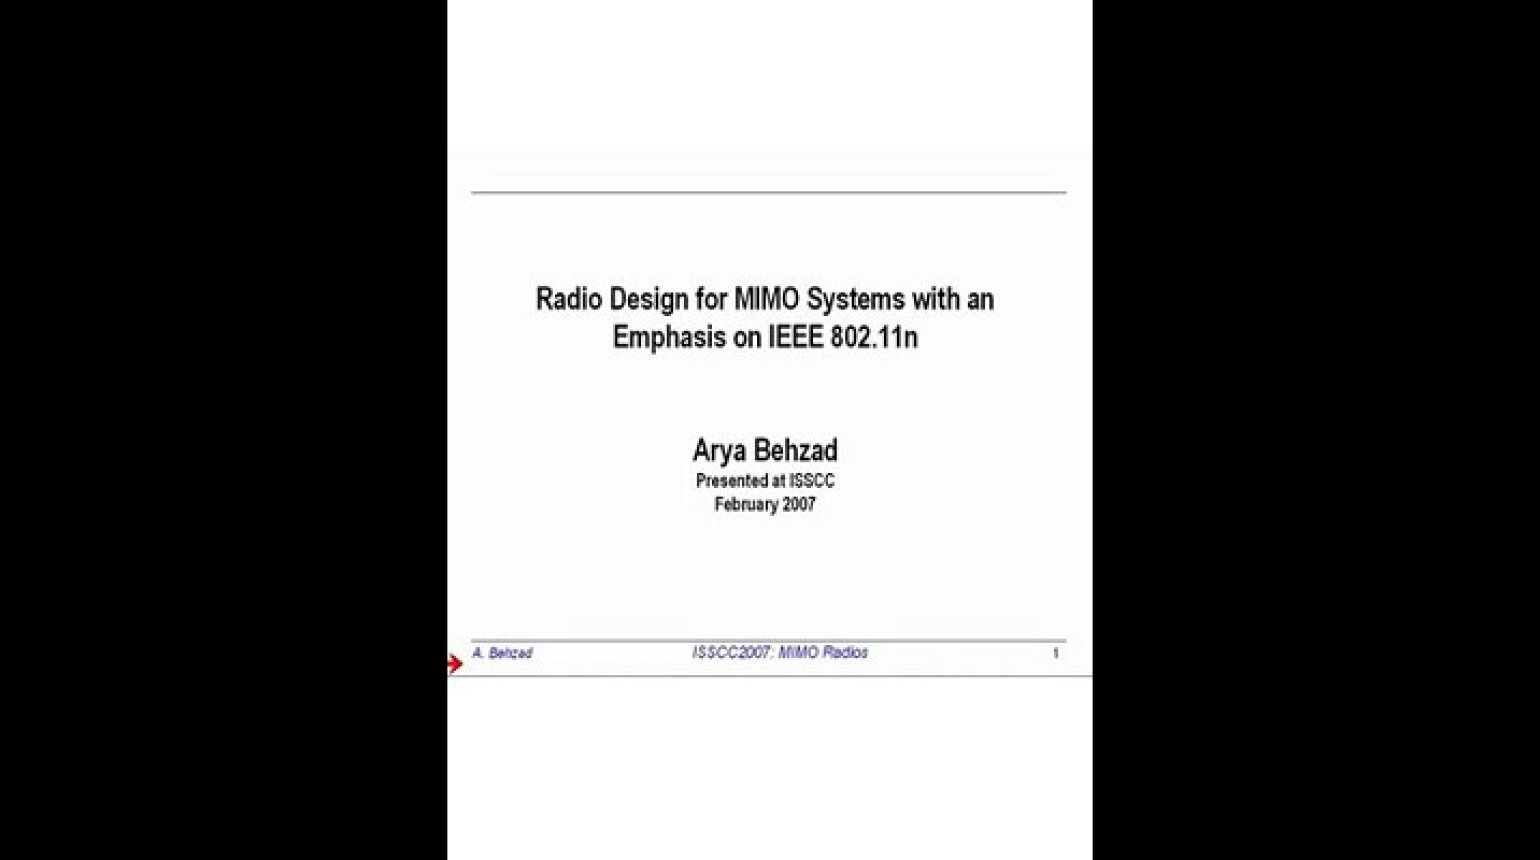 Radio Design for MIMO Systems with an Emphasis on IEEE 802.11n Video